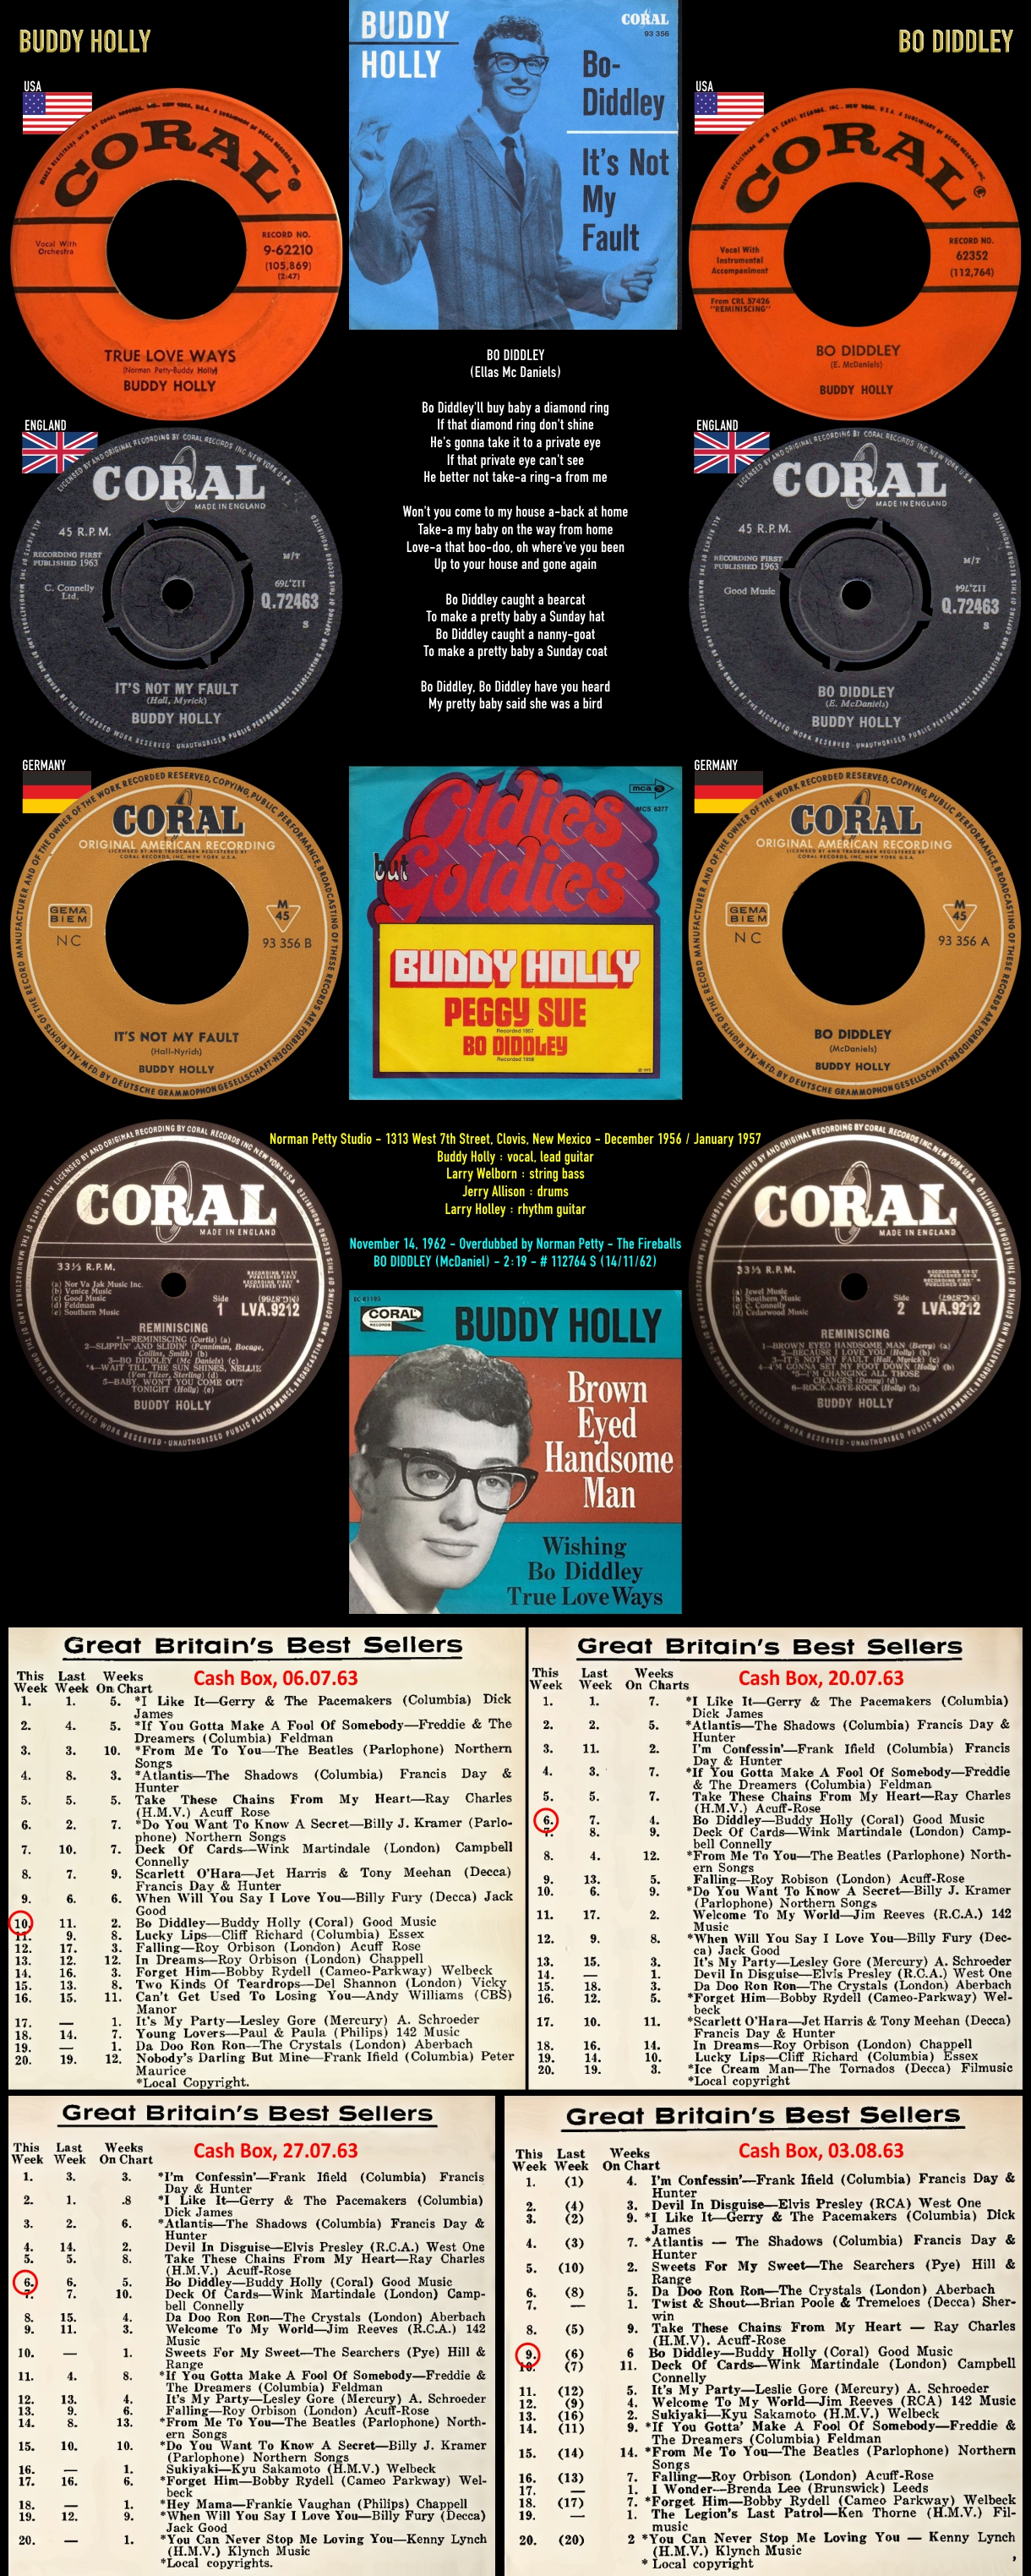 630608_Buddy Holly_Bo Diddle